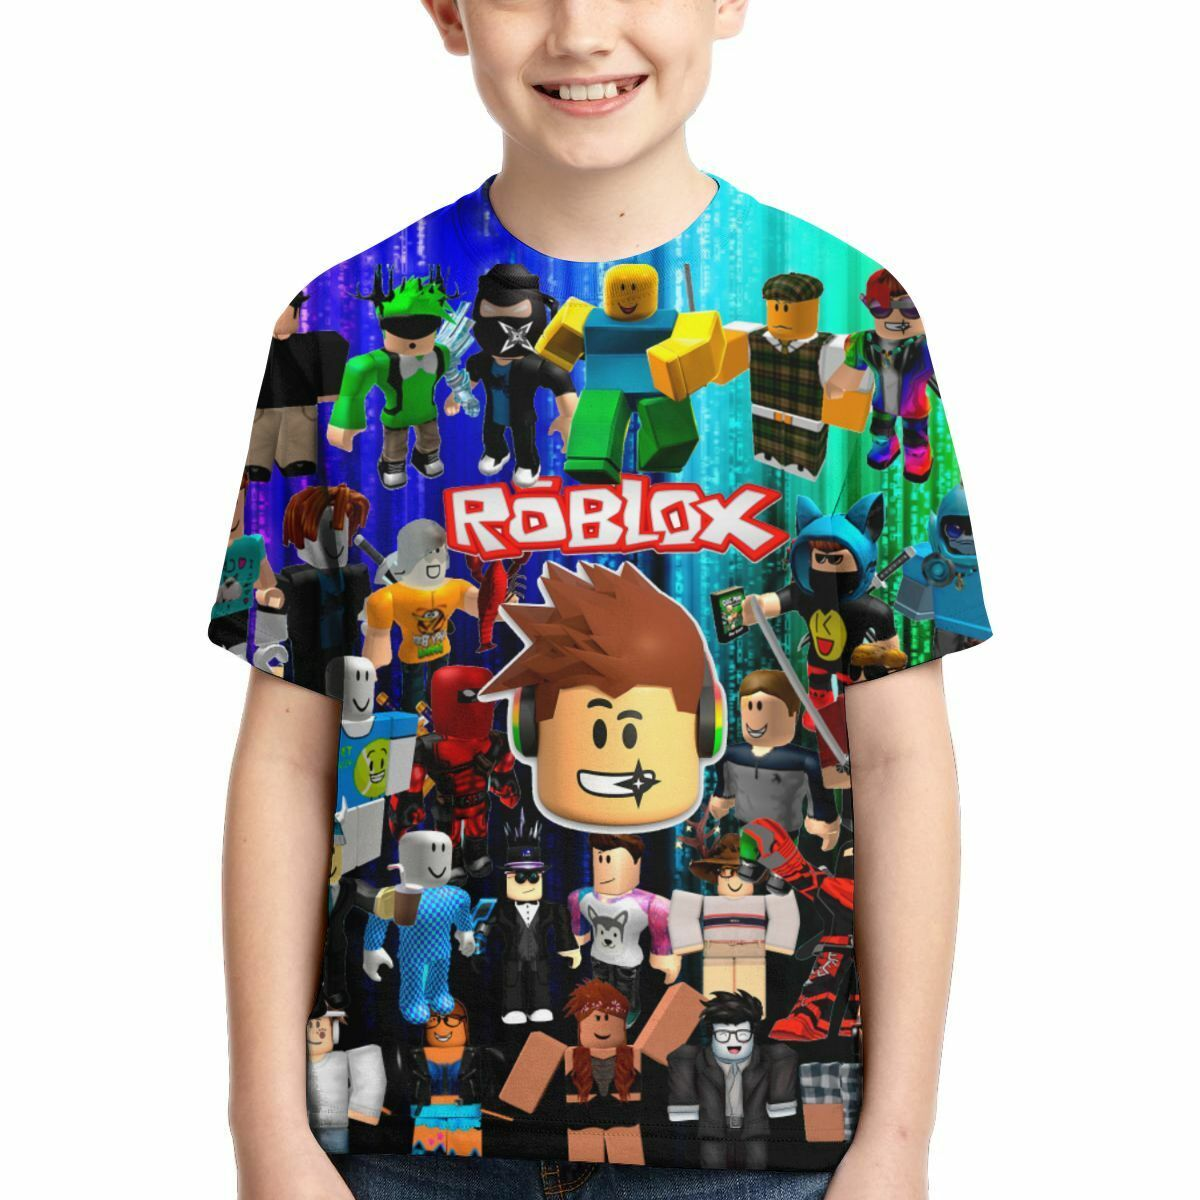 2019 Summer Boys T Shirts Roblox Gamer Cotton T Shirt Girls Roblox Characters Kids Youth T Shirt Boys Summer Short Sleeve Tops Game Tees Ebay